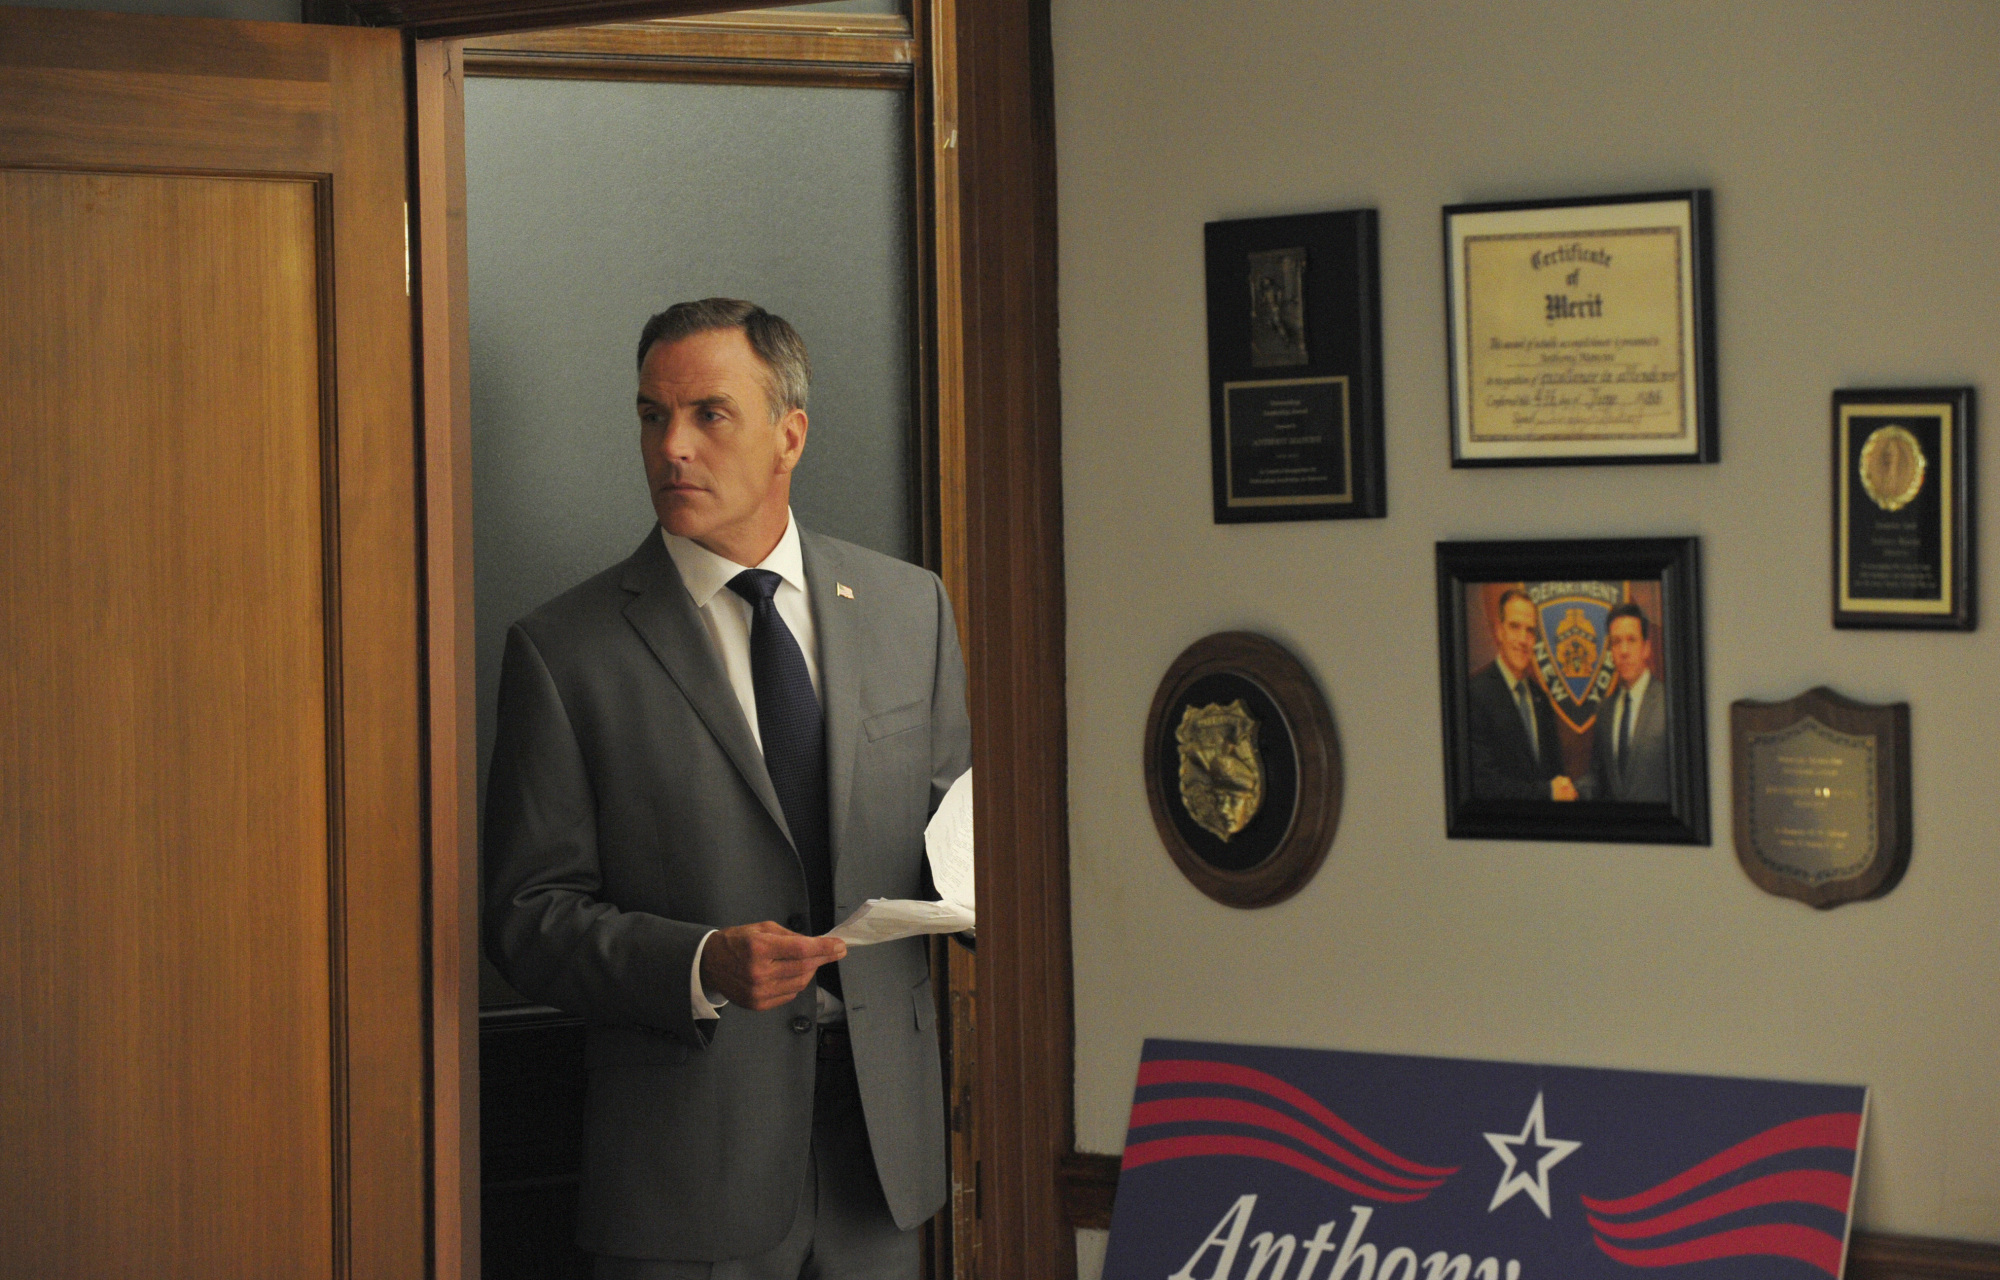 Councilman Mancini in the Office